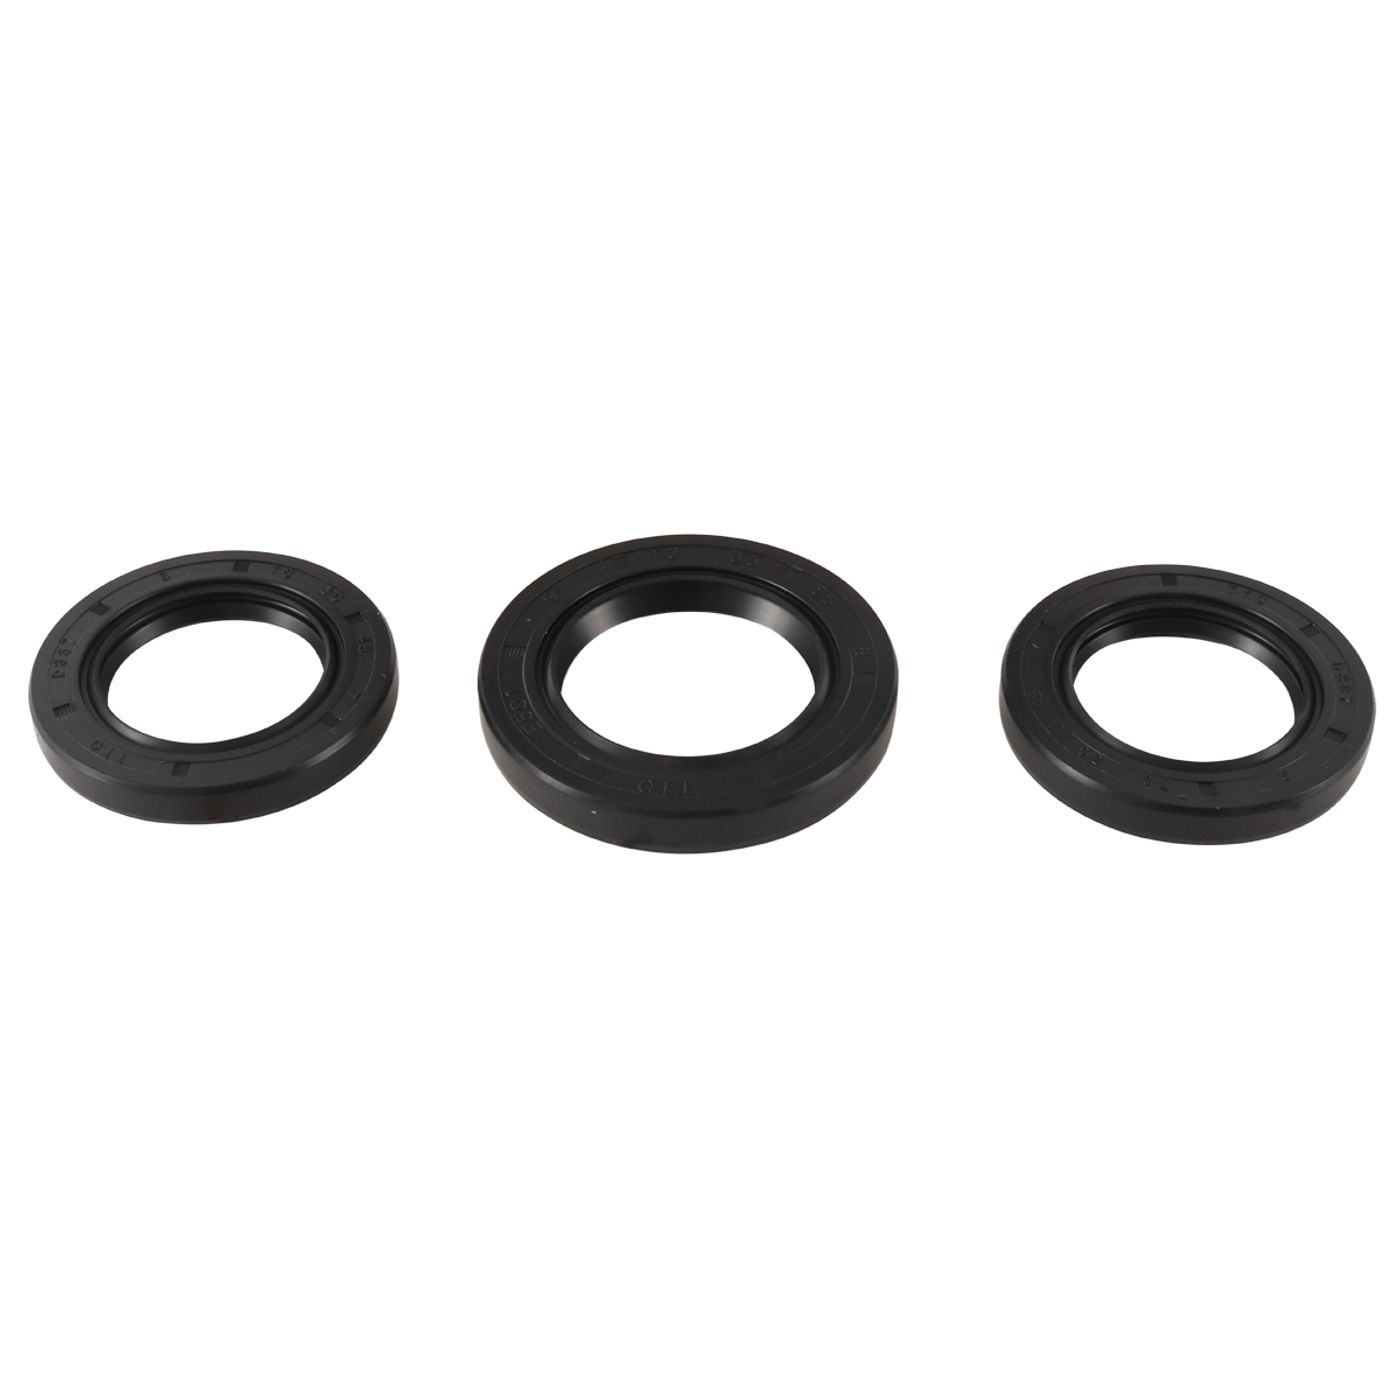 Wrp Diff Seal Kits - WRP252015-5 image